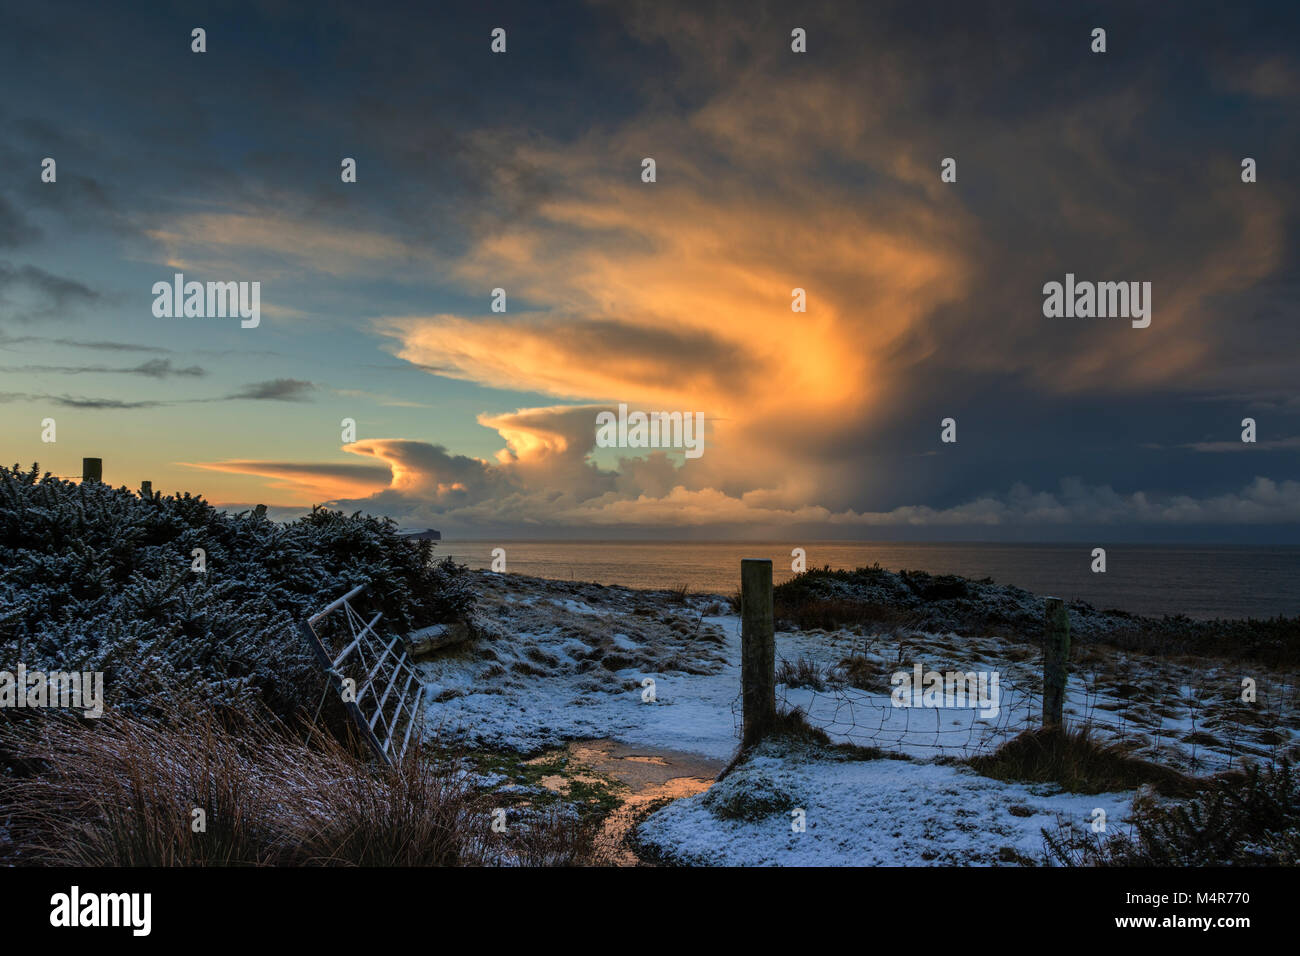 Cumulonimbus cloud at sunset, over the Pentland Firth, from a farm gate near St. John's Point, Caithness, Scotland, - Stock Image